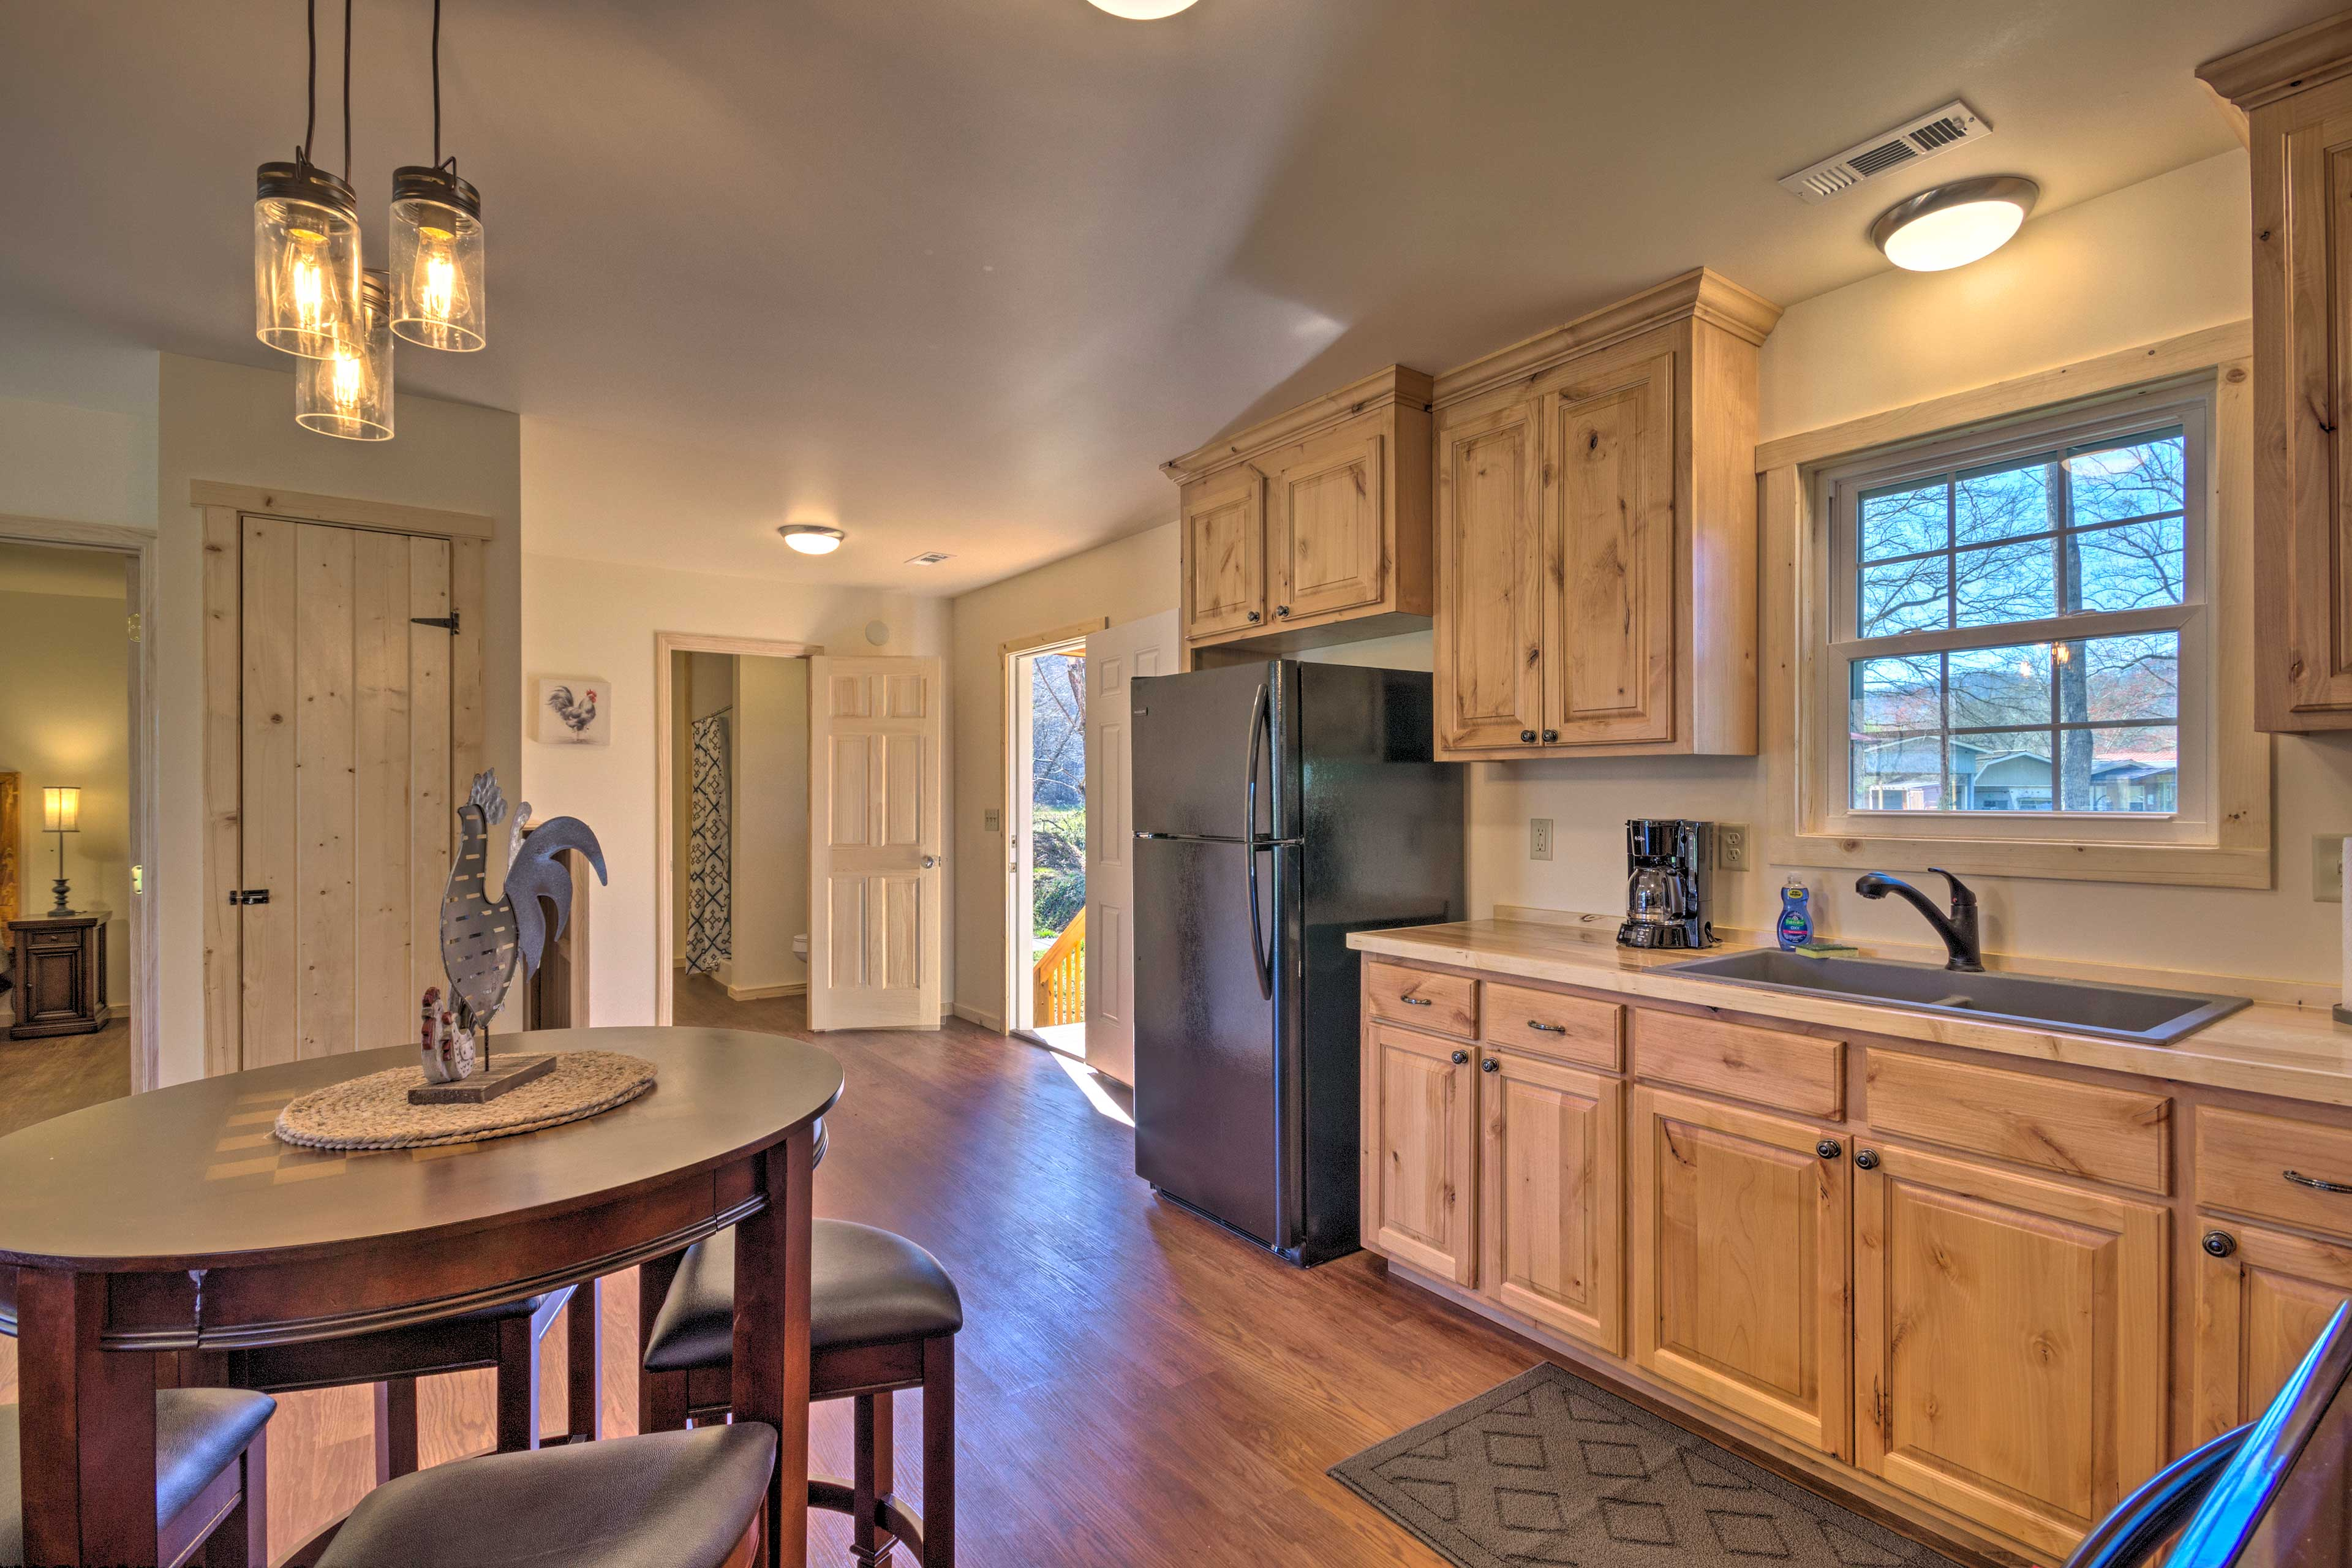 The kitchen is well-equipped and boasts ample storage space.